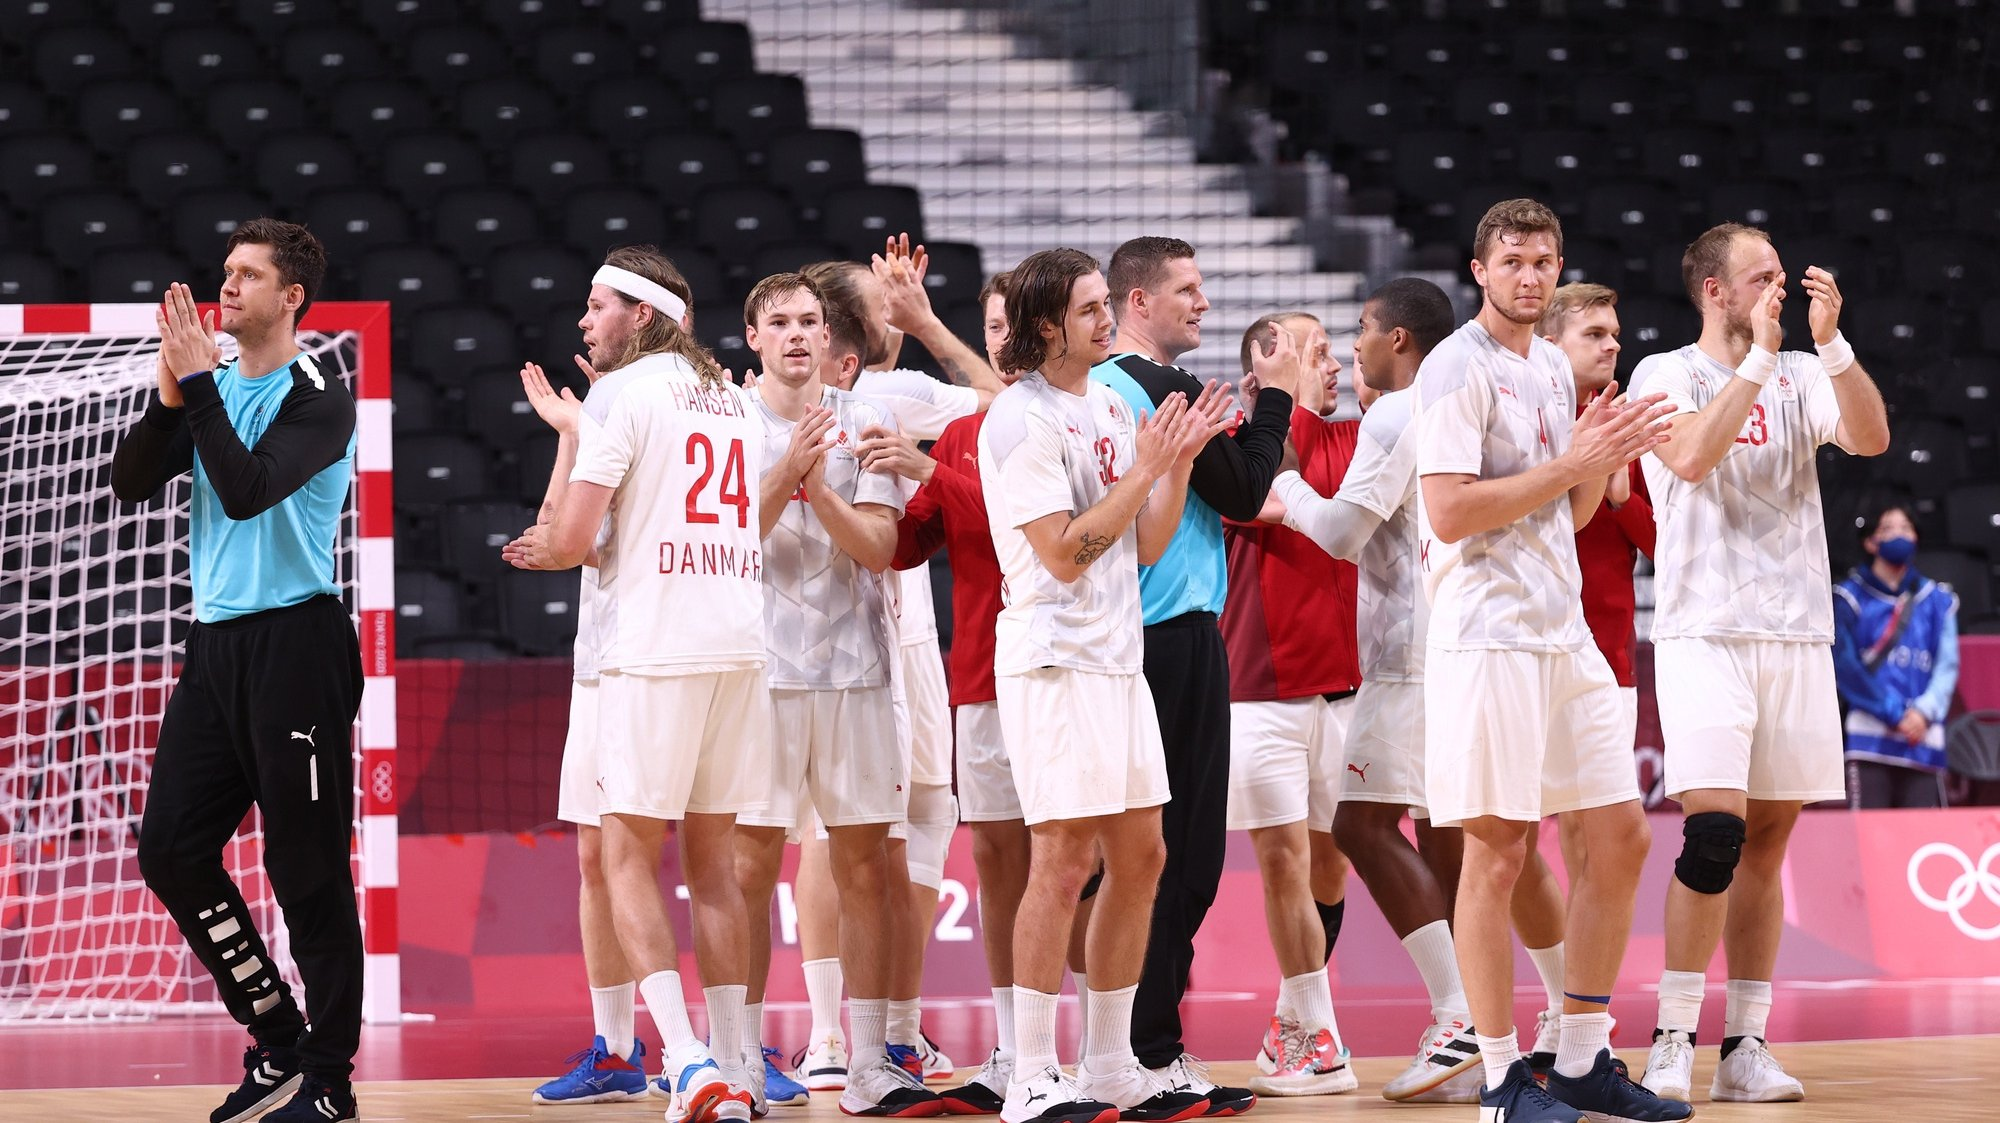 epa09379818 Players of Denmark celebrate after the Men's Handball preliminary round match between Portugal and Denmark at the Tokyo 2020 Olympic Games at the Yoyogi National Gymnasium arena in Tokyo, Japan, 30 July 2021.  EPA/WU HONG